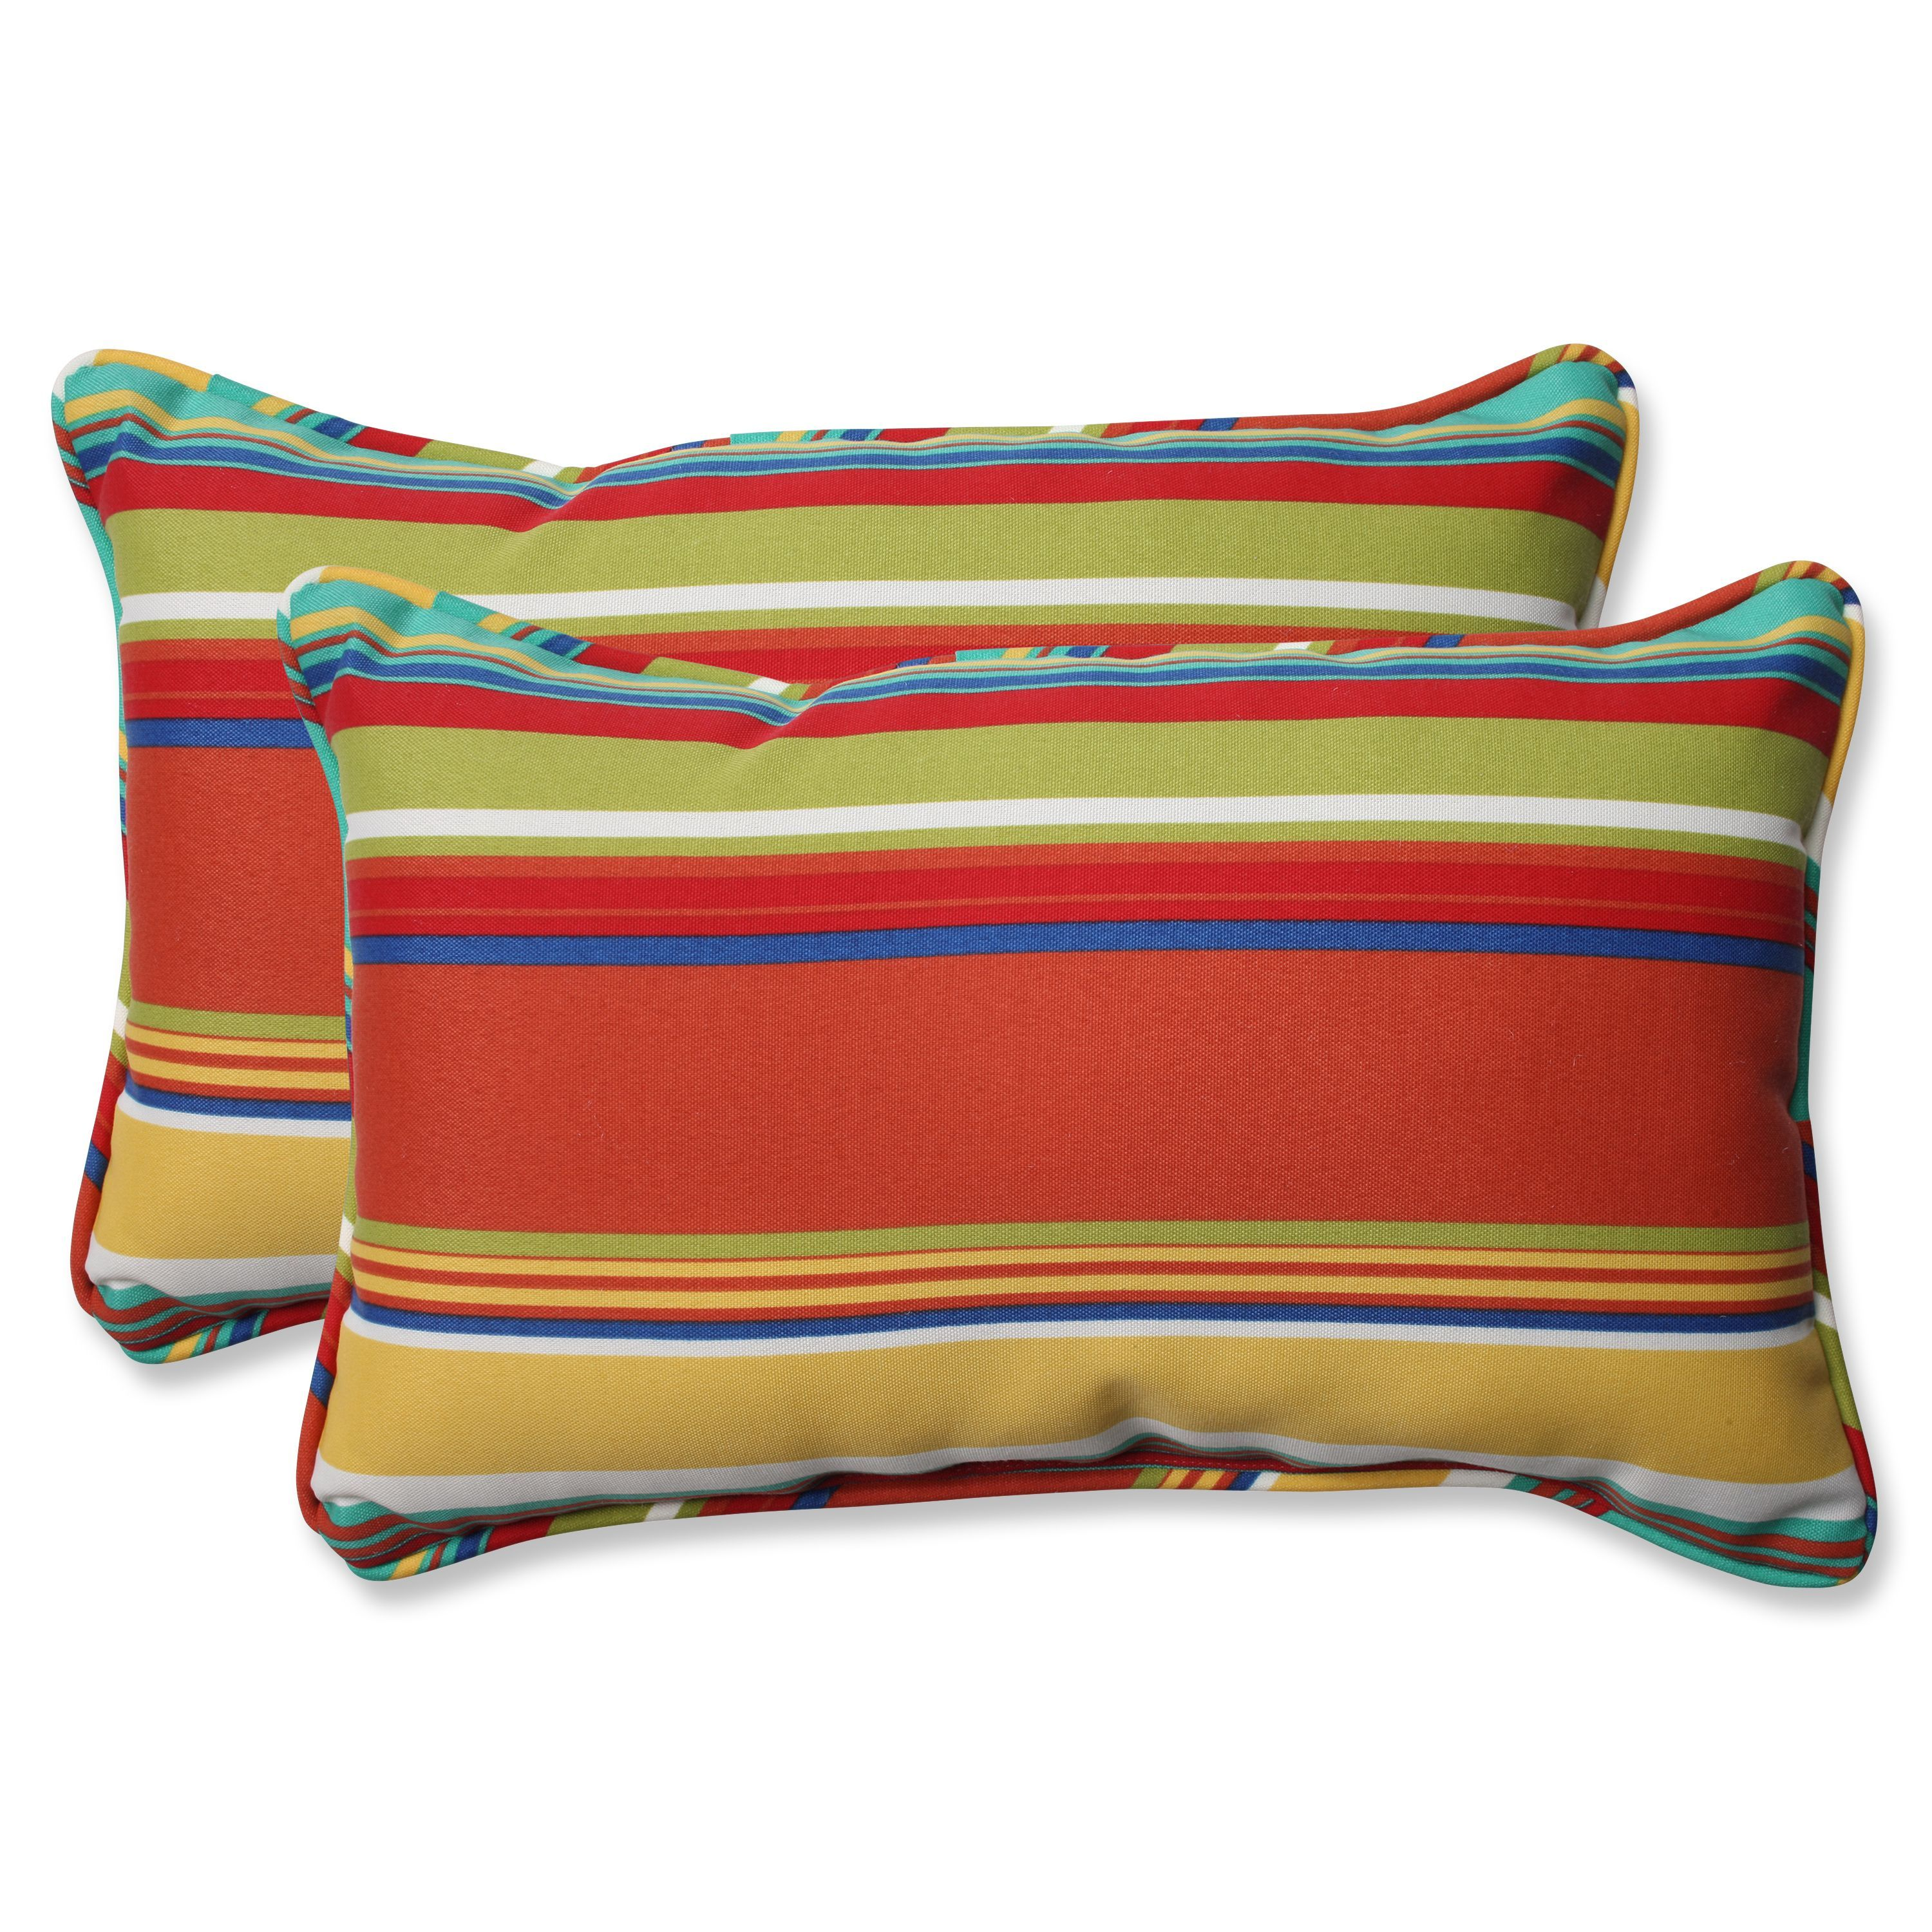 Pillow Perfect Outdoor Westport Spring Rectangular Throw Pillow Set